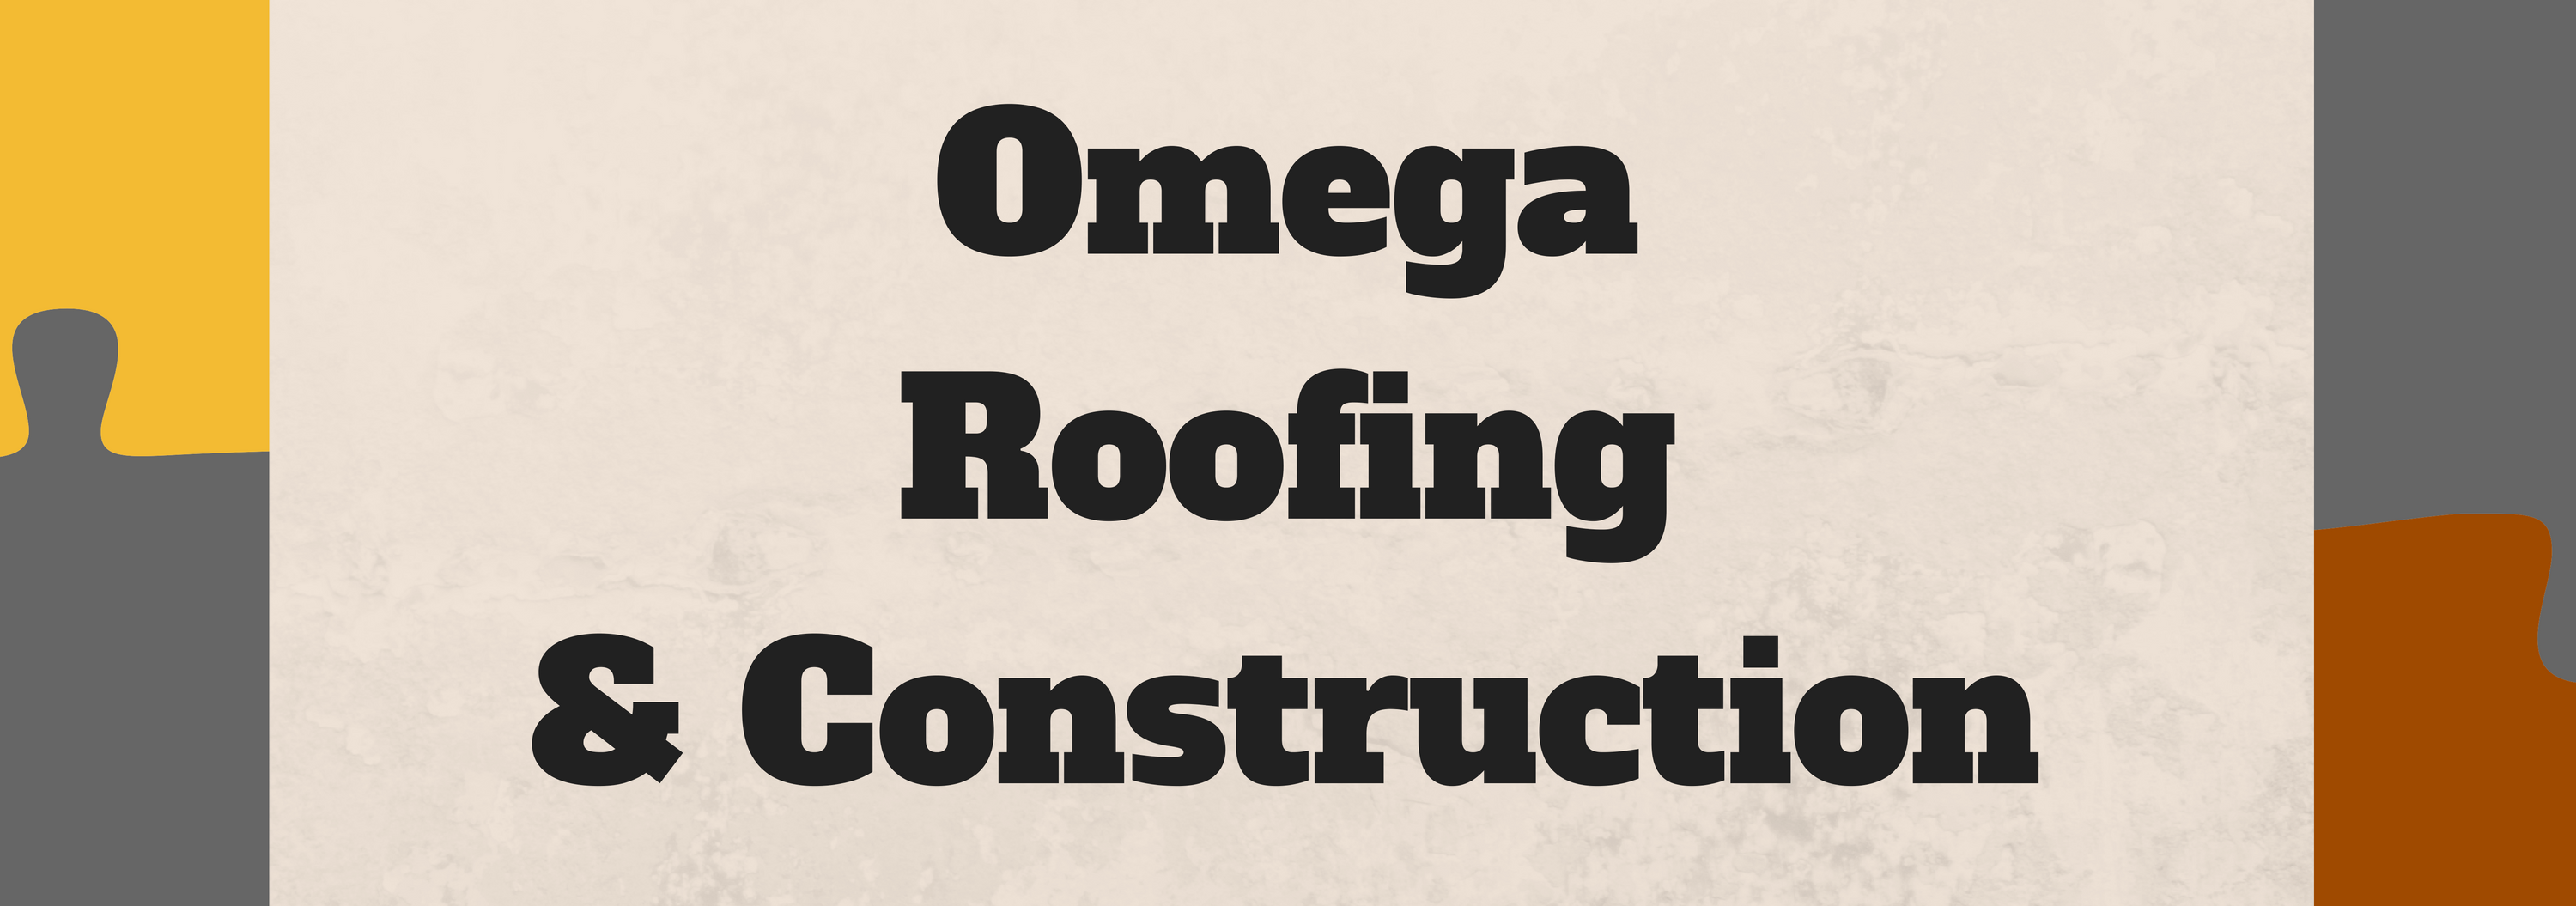 Omega Roofing U0026 Construction